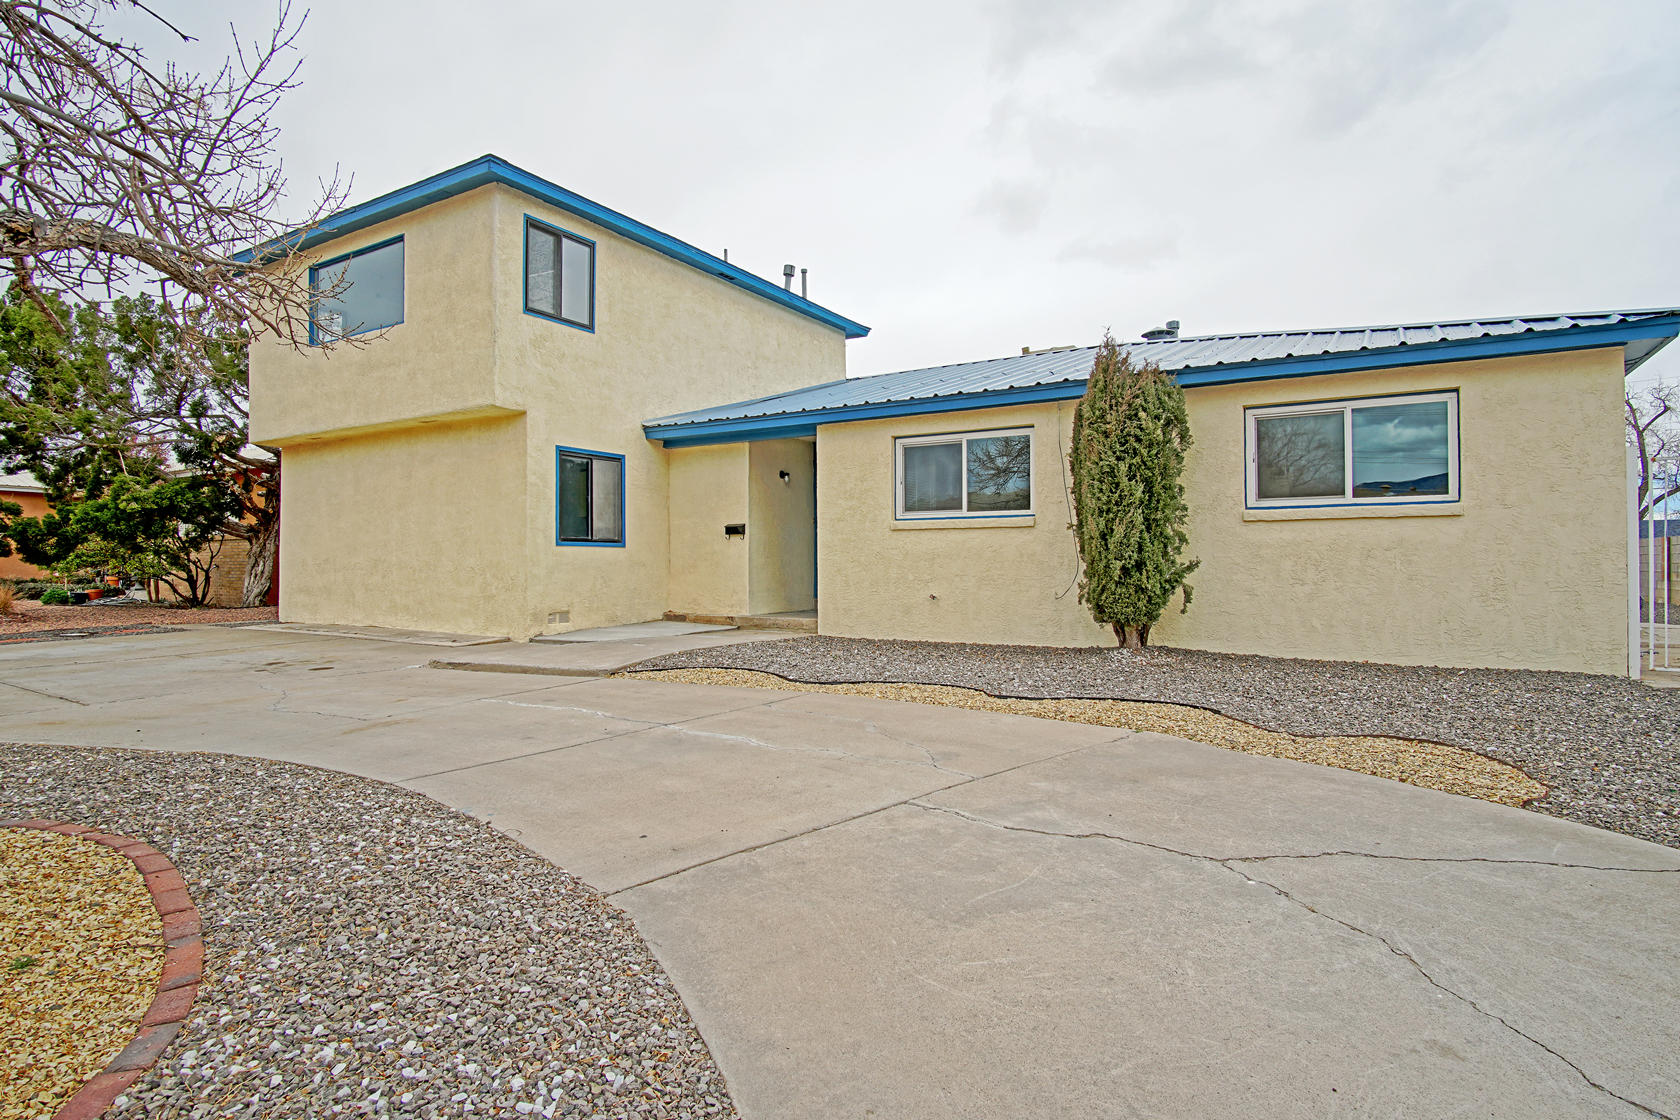 $15000 Price Reduced! WOW! Newly Remodeled and a great views of the Sandia Mountain.  Very large home featuring 5 Bedrooms, 4 Baths, 2 living areas and an open floor plan.  Complete kitchen upgrade includes: granite countertops, cabinets doors and paint, and new appliances all around. New beautiful tile flooring in wet areas and kitchen. Newly stained hard wood flooring, almost all windows replaced. Freshy painted walls and ceilings, Oversized backyard and sideyard. Backyard access. Great location! Must See!